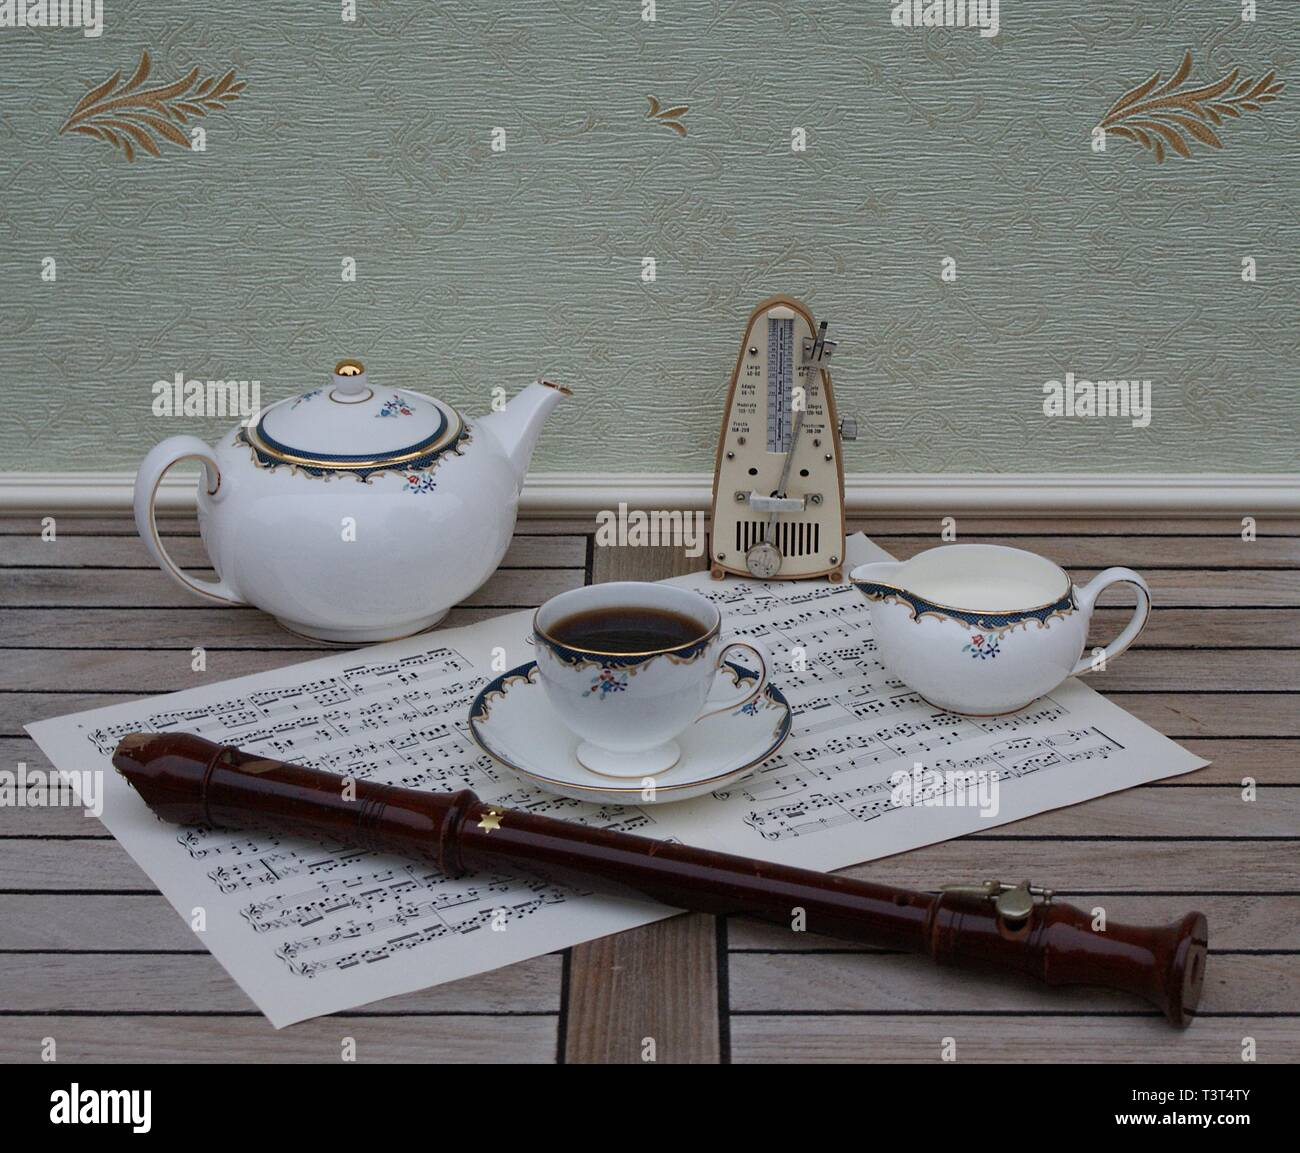 English teacup with saucer, teapot and cream jug, fine bone china porcelain, metronome for music and a block flute on a sheet of music - Stock Image